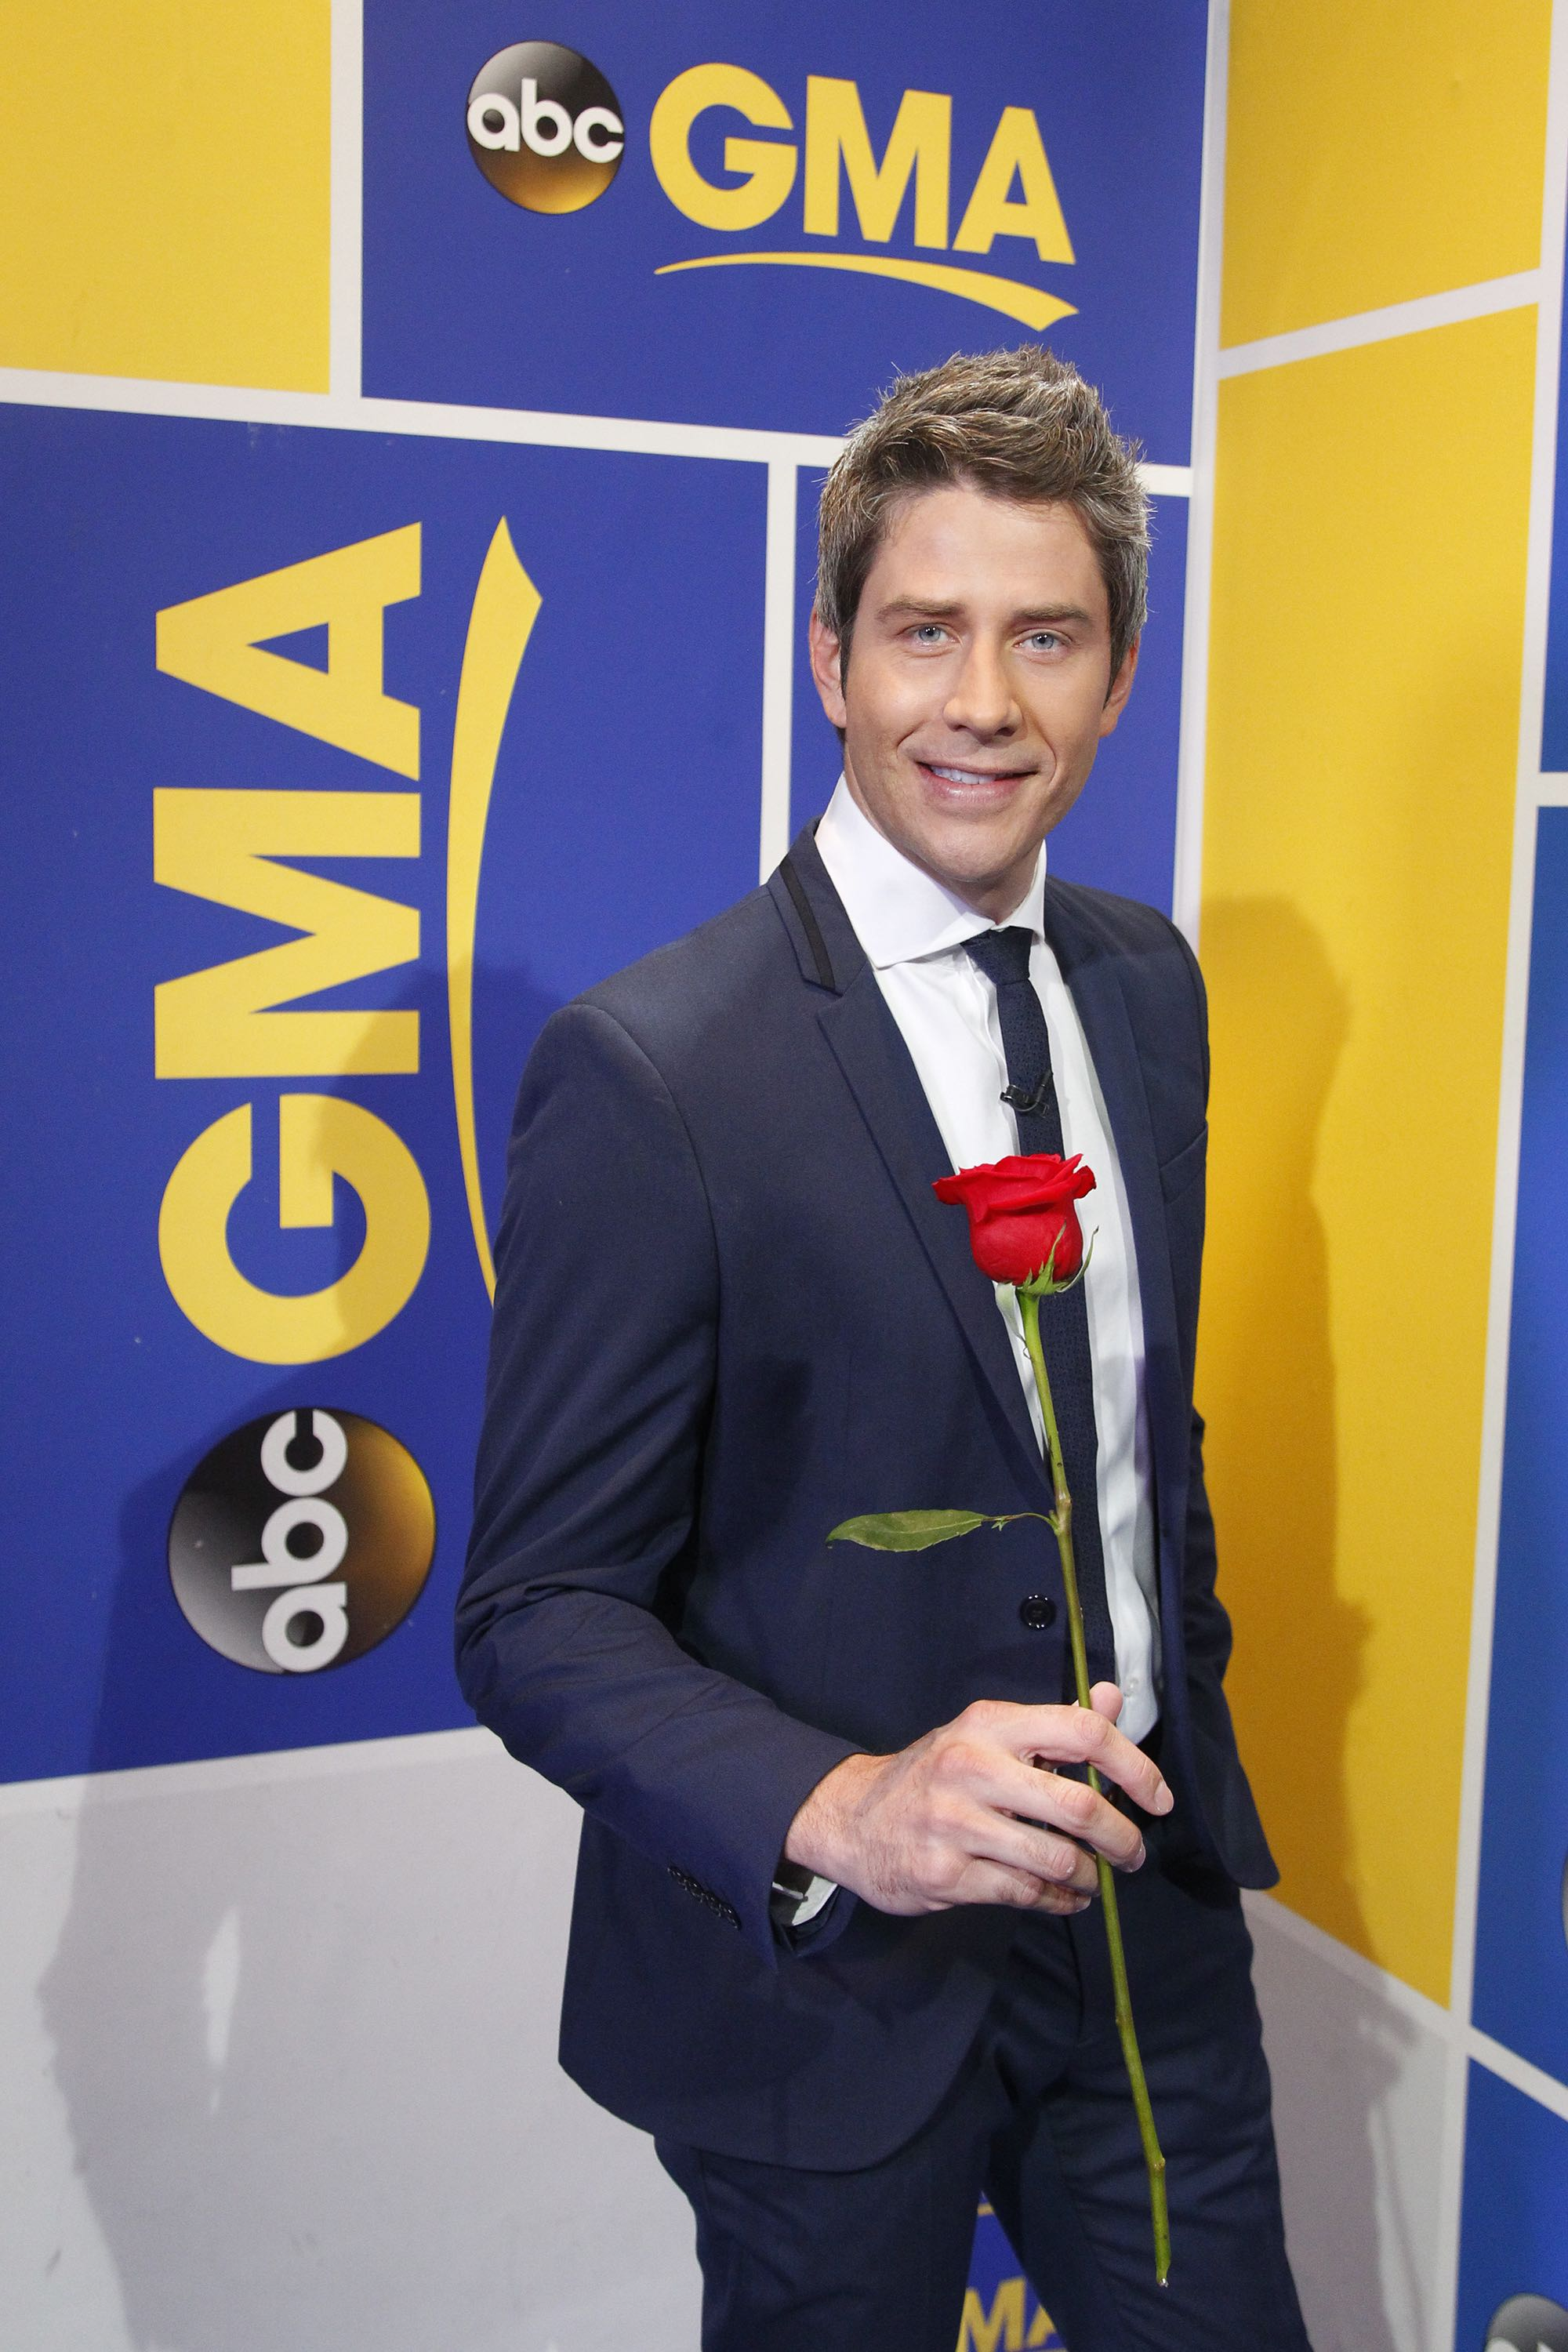 After A Tearful Exit On Emilys Season Of The Bachelorette Arie Has Stepped Away From Spotlight And Focused His New Career In Real Estate